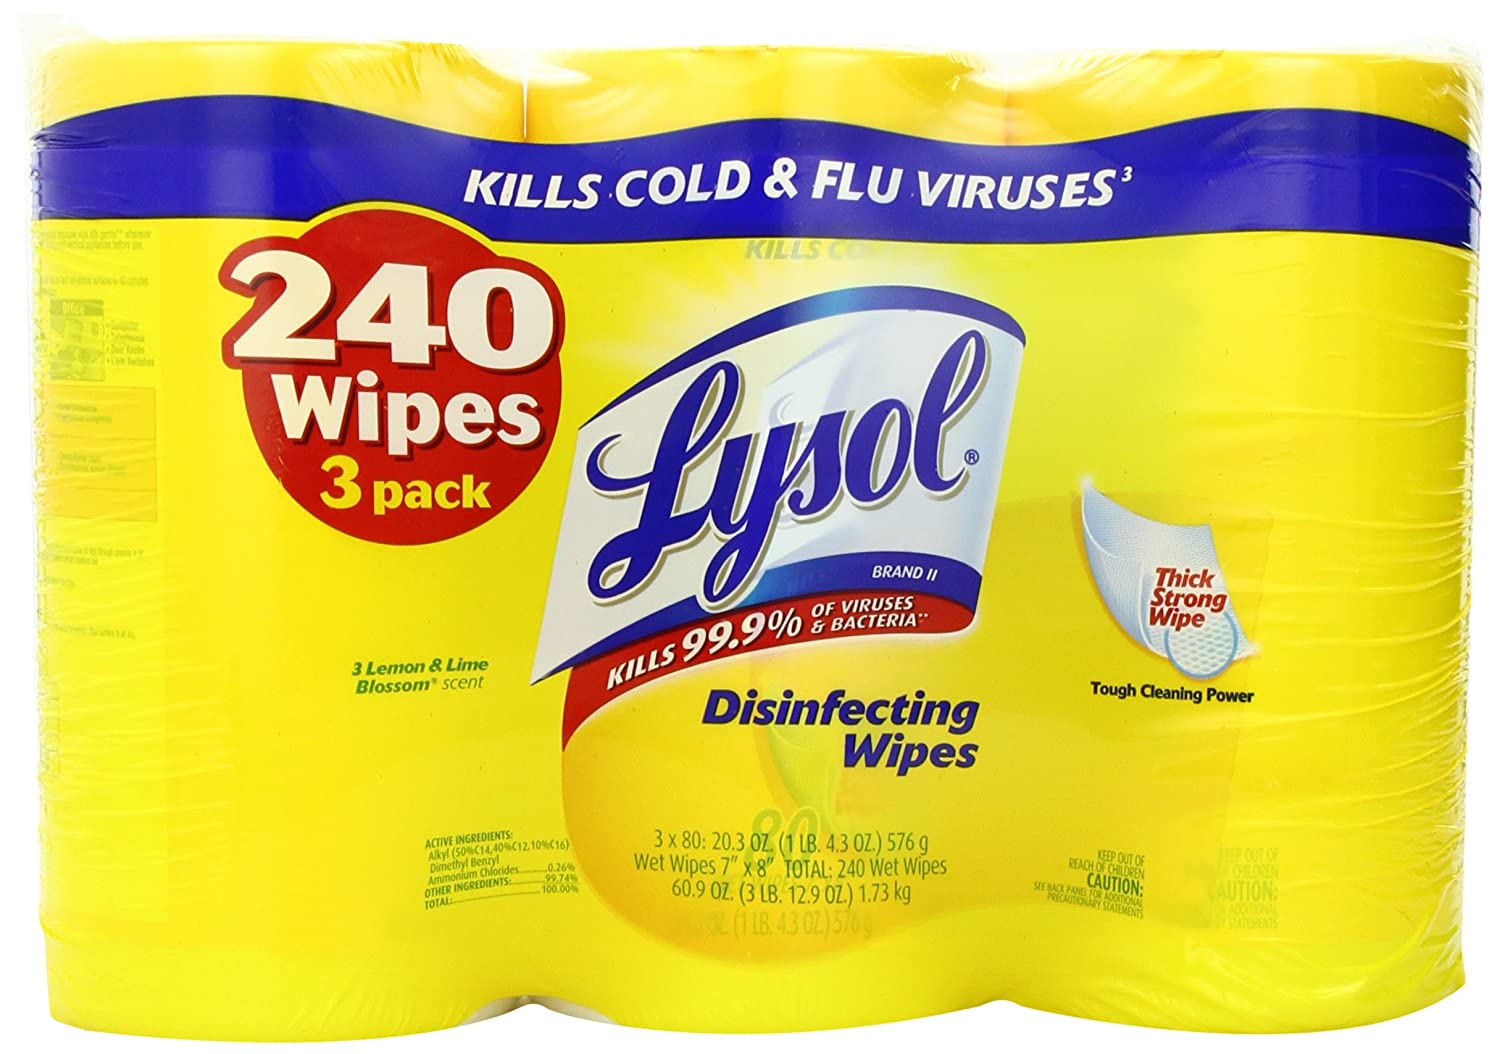 Lysol Disinfecting Wipes Value Pack, Lemon and Lime Blossom, 240 Count  $9.97